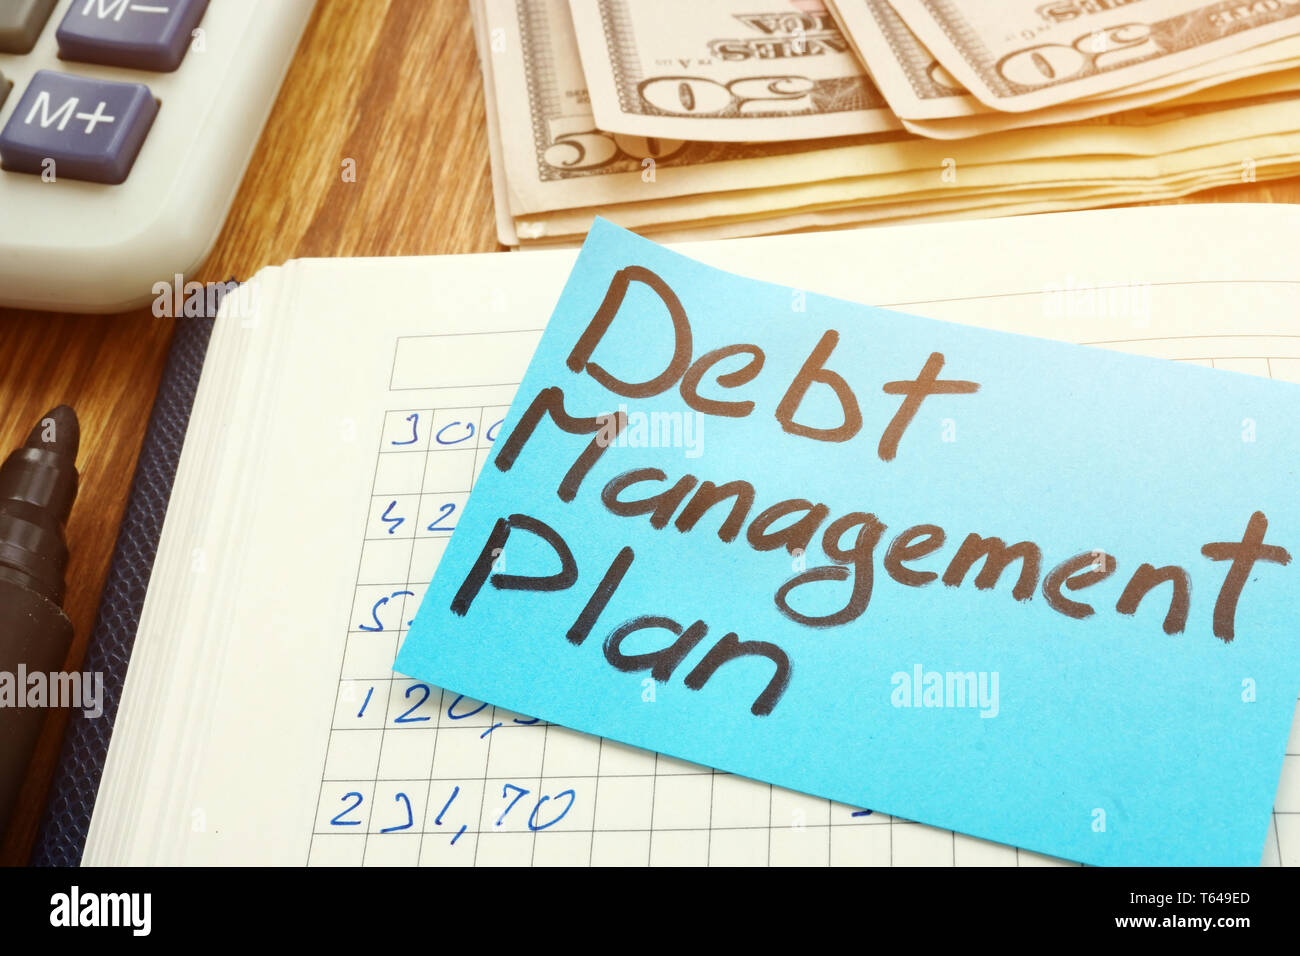 Debt management plan with calculator and cash. - Stock Image